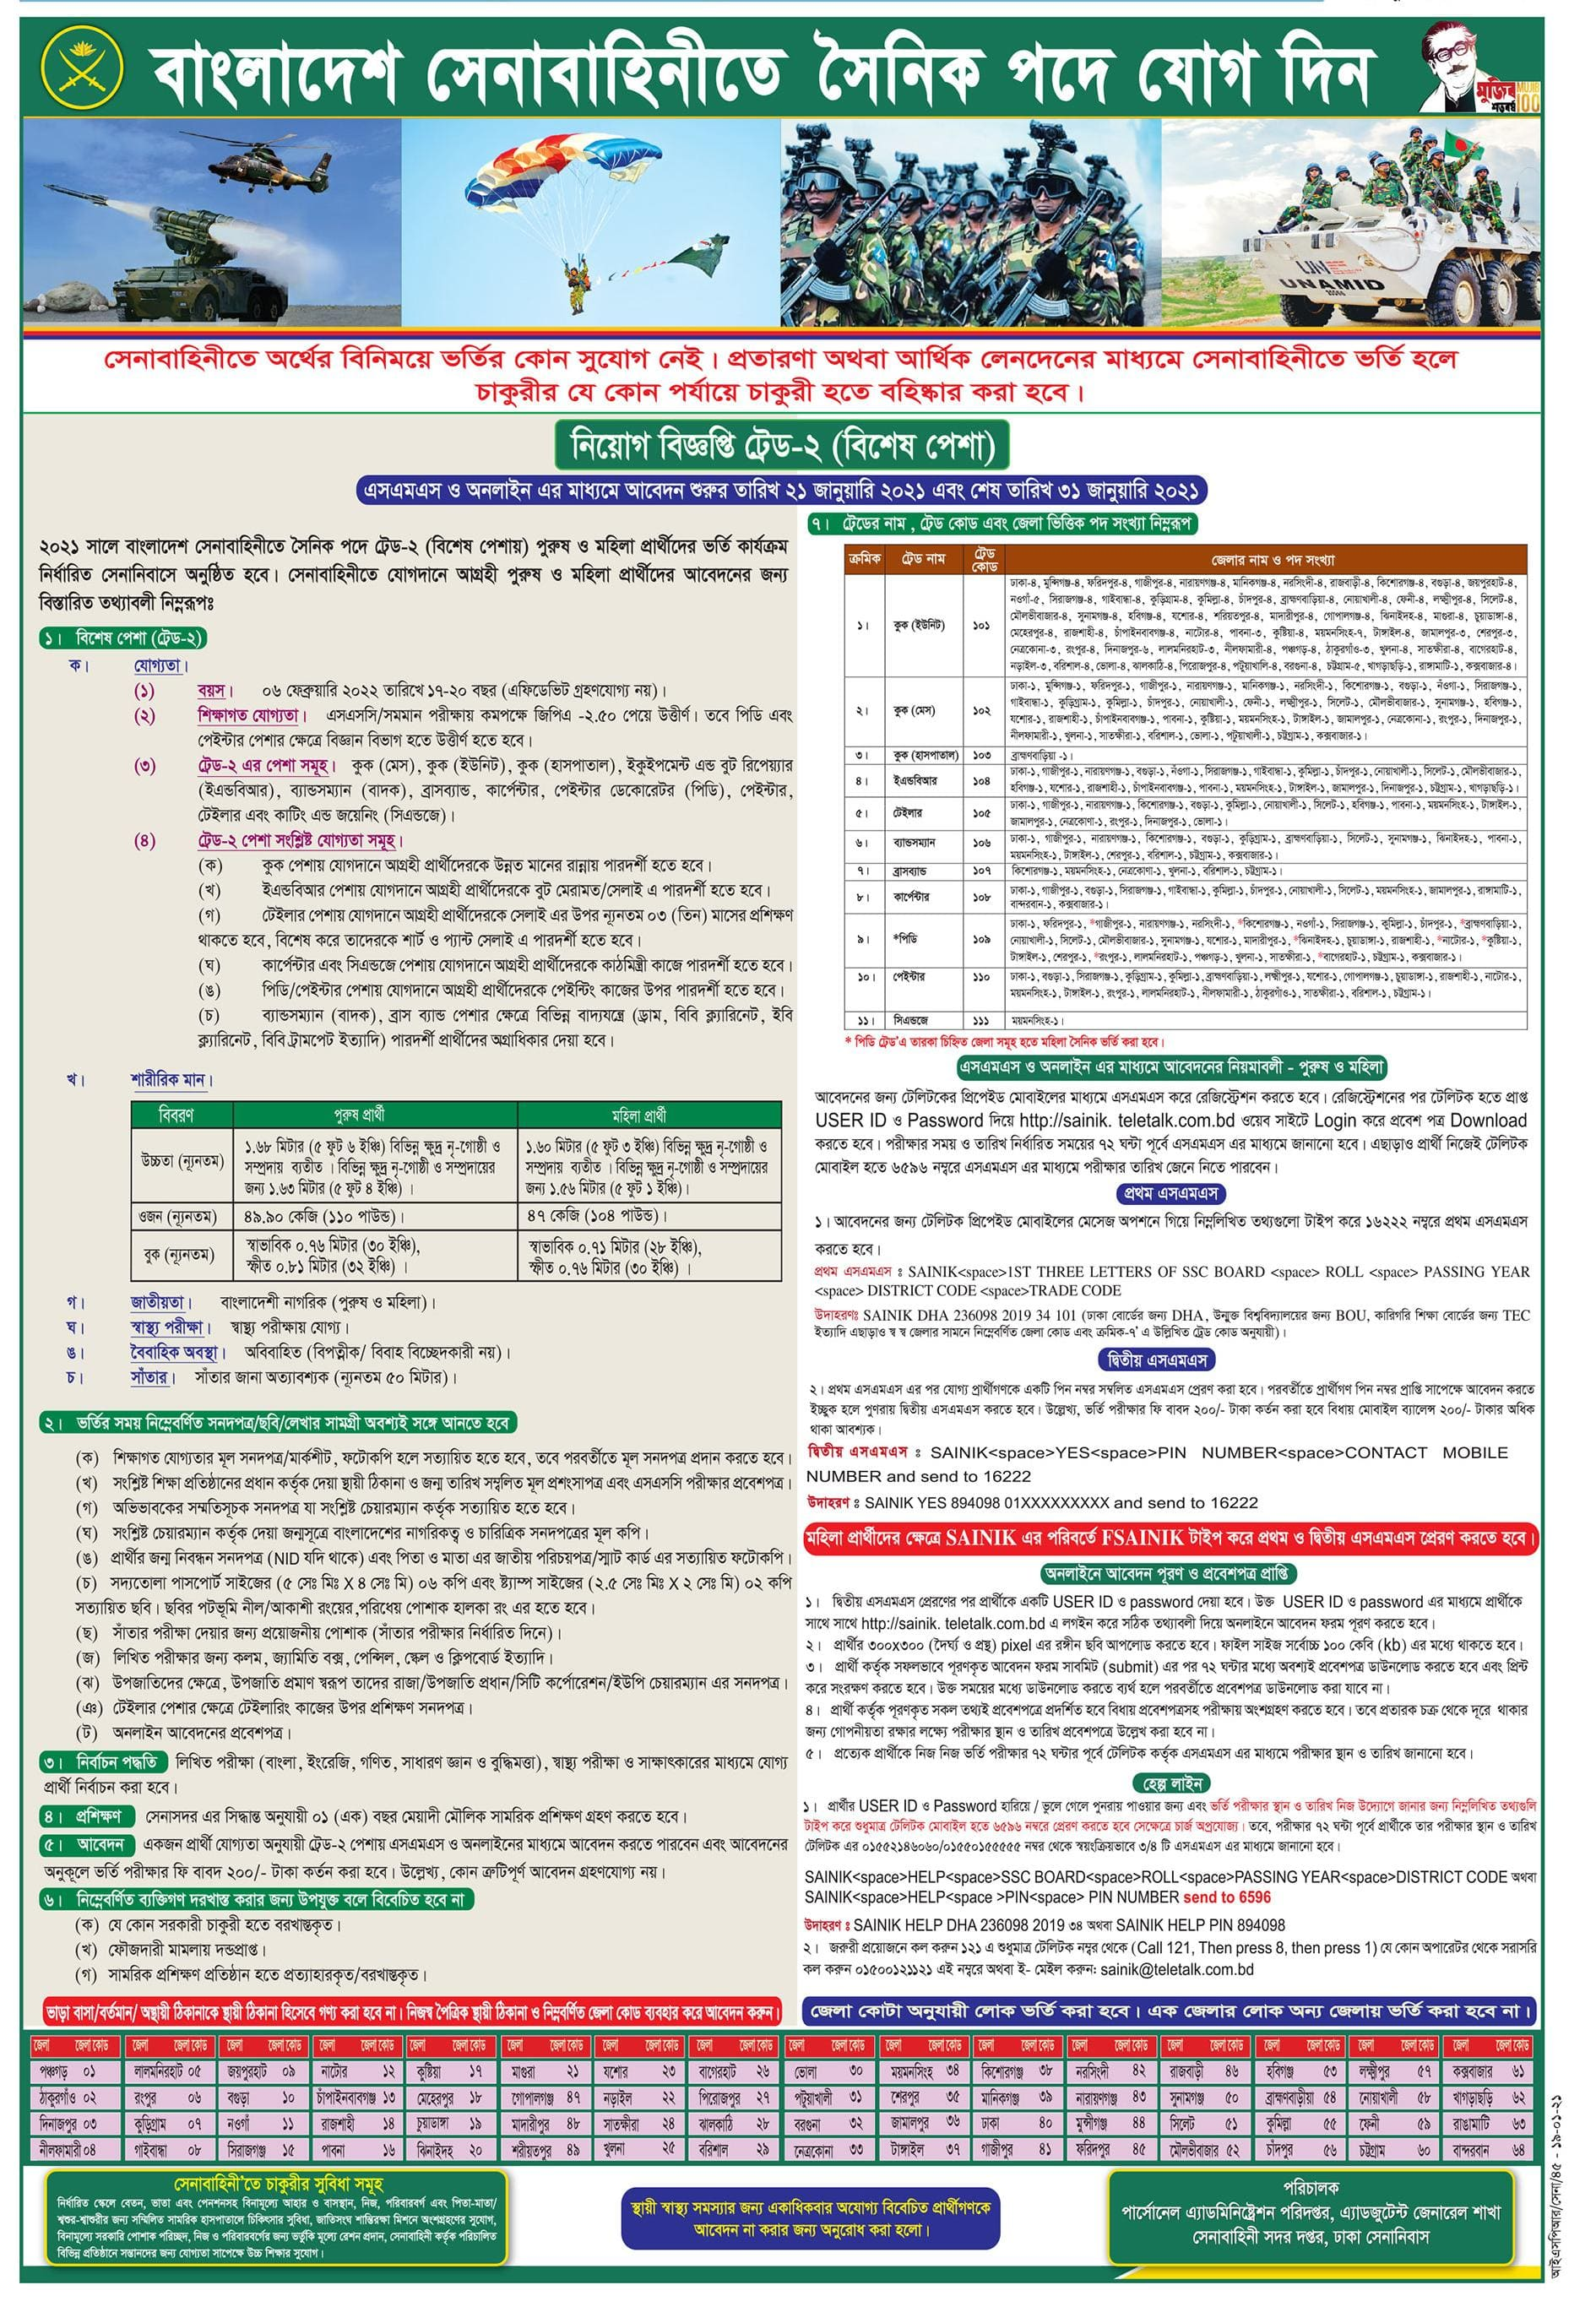 Bangladesh Army Sainik Job Circular 2021